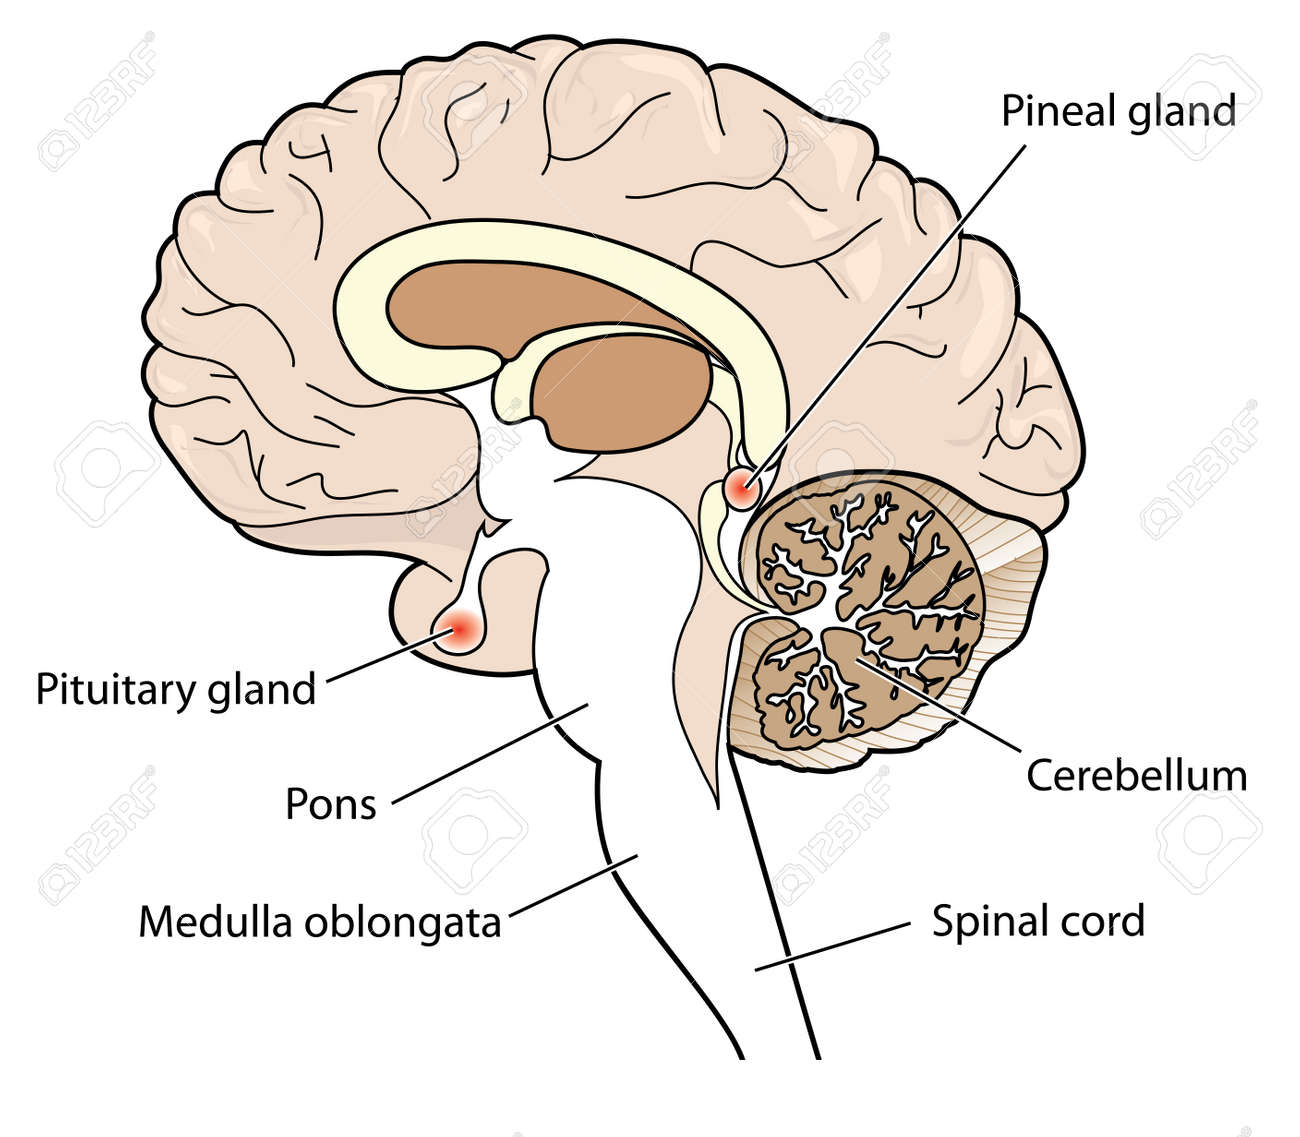 hight resolution of cross section of brain showing the pituitary and pineal glands cerebellum and brainstem stock